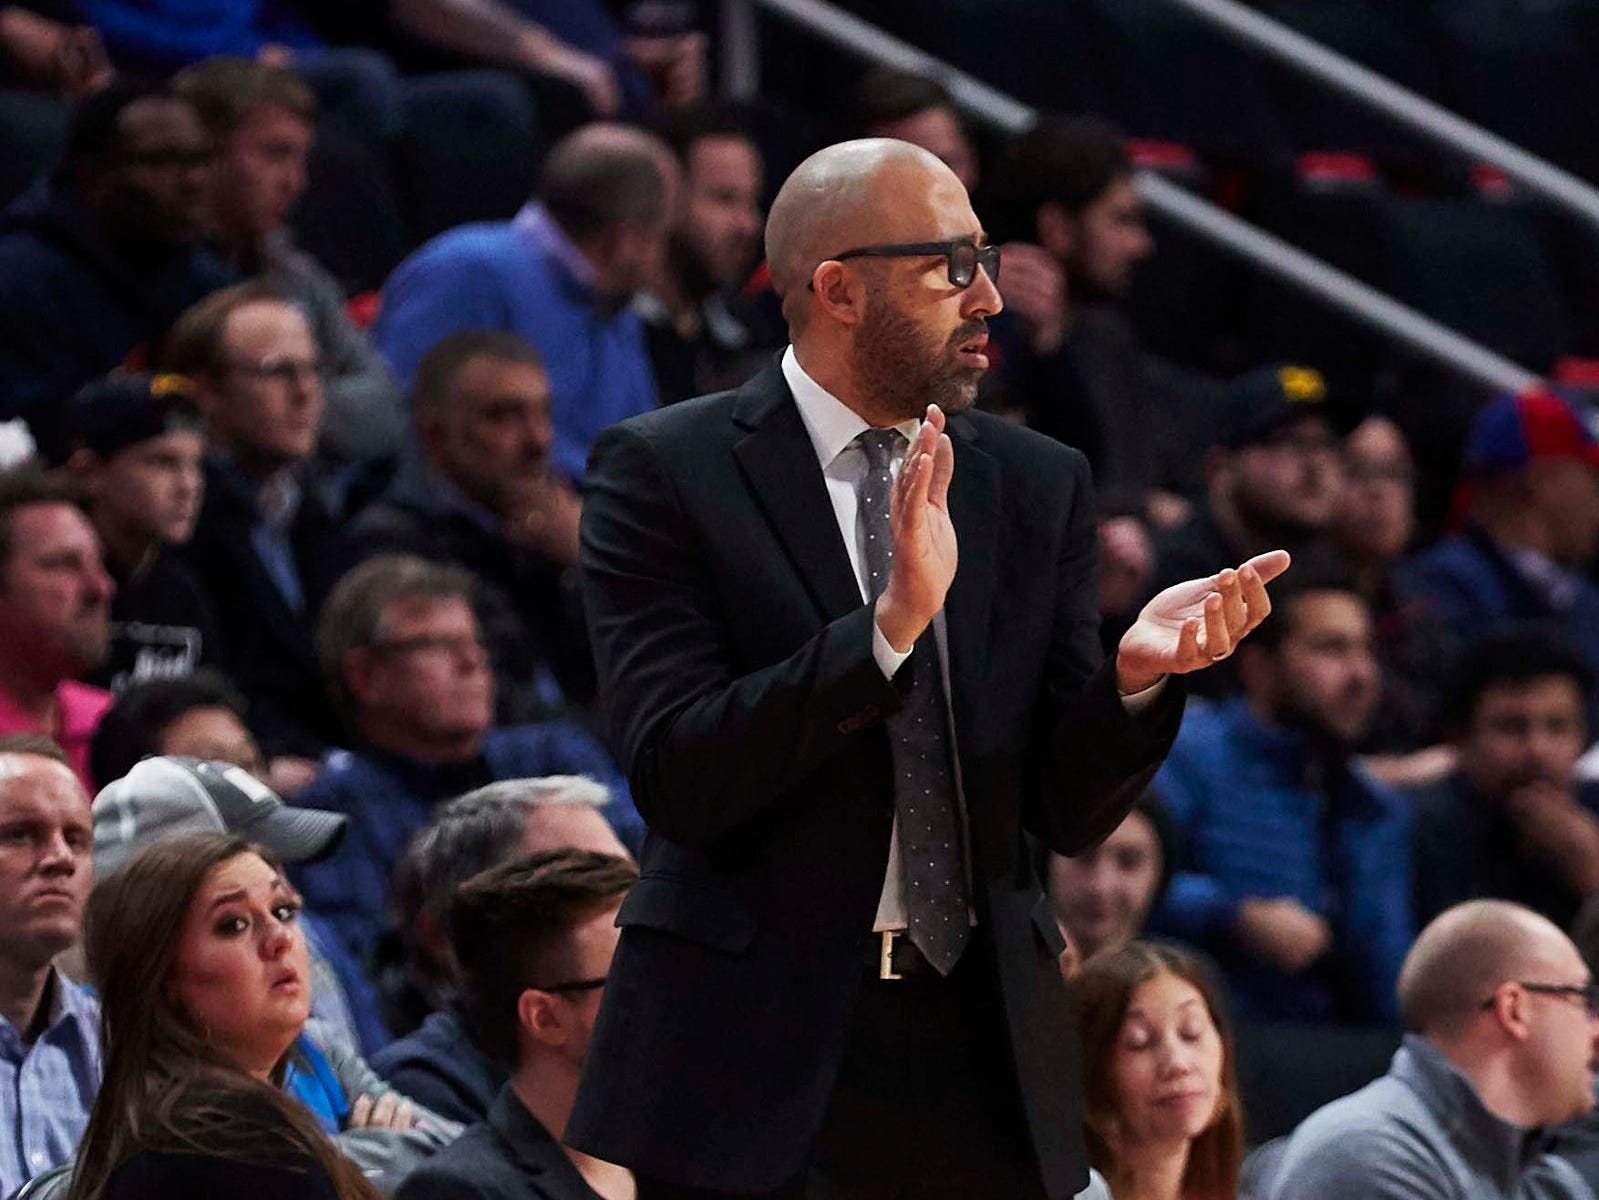 New York Knicks head coach David Fizdale during the first half against the Detroit Pistons at Little Caesars Arena.